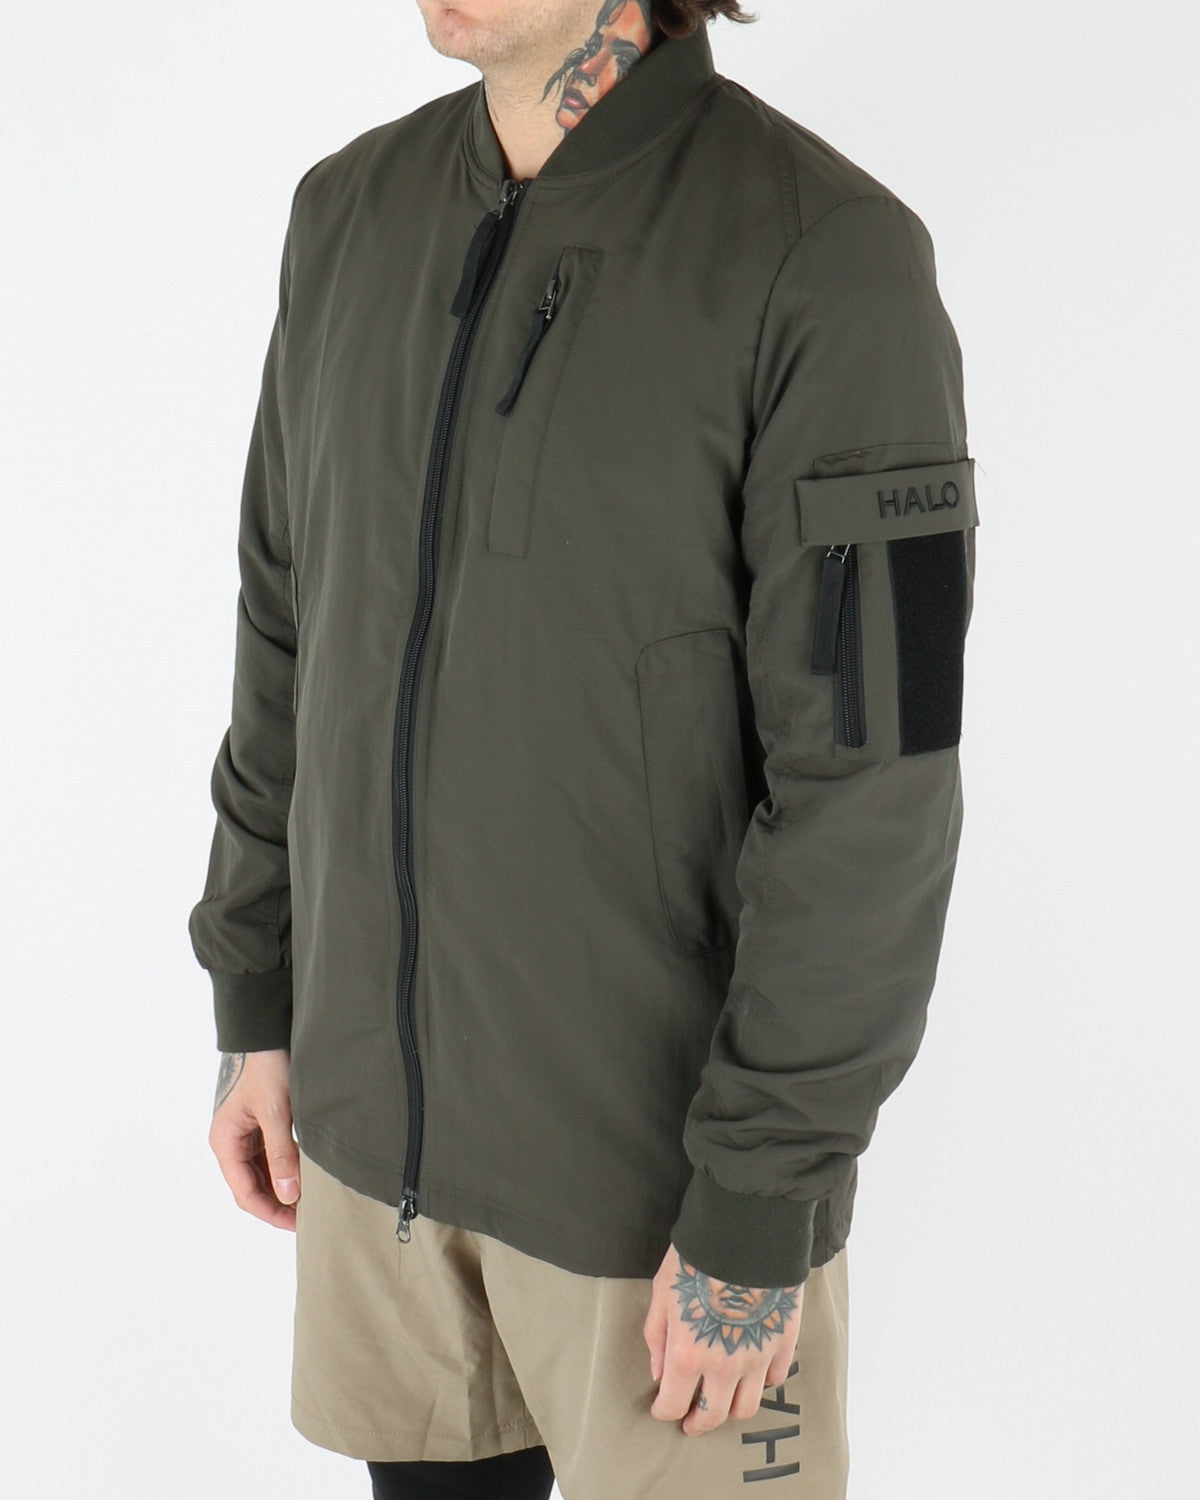 newline halo_flight jacket_c-130_olive_view_2_2